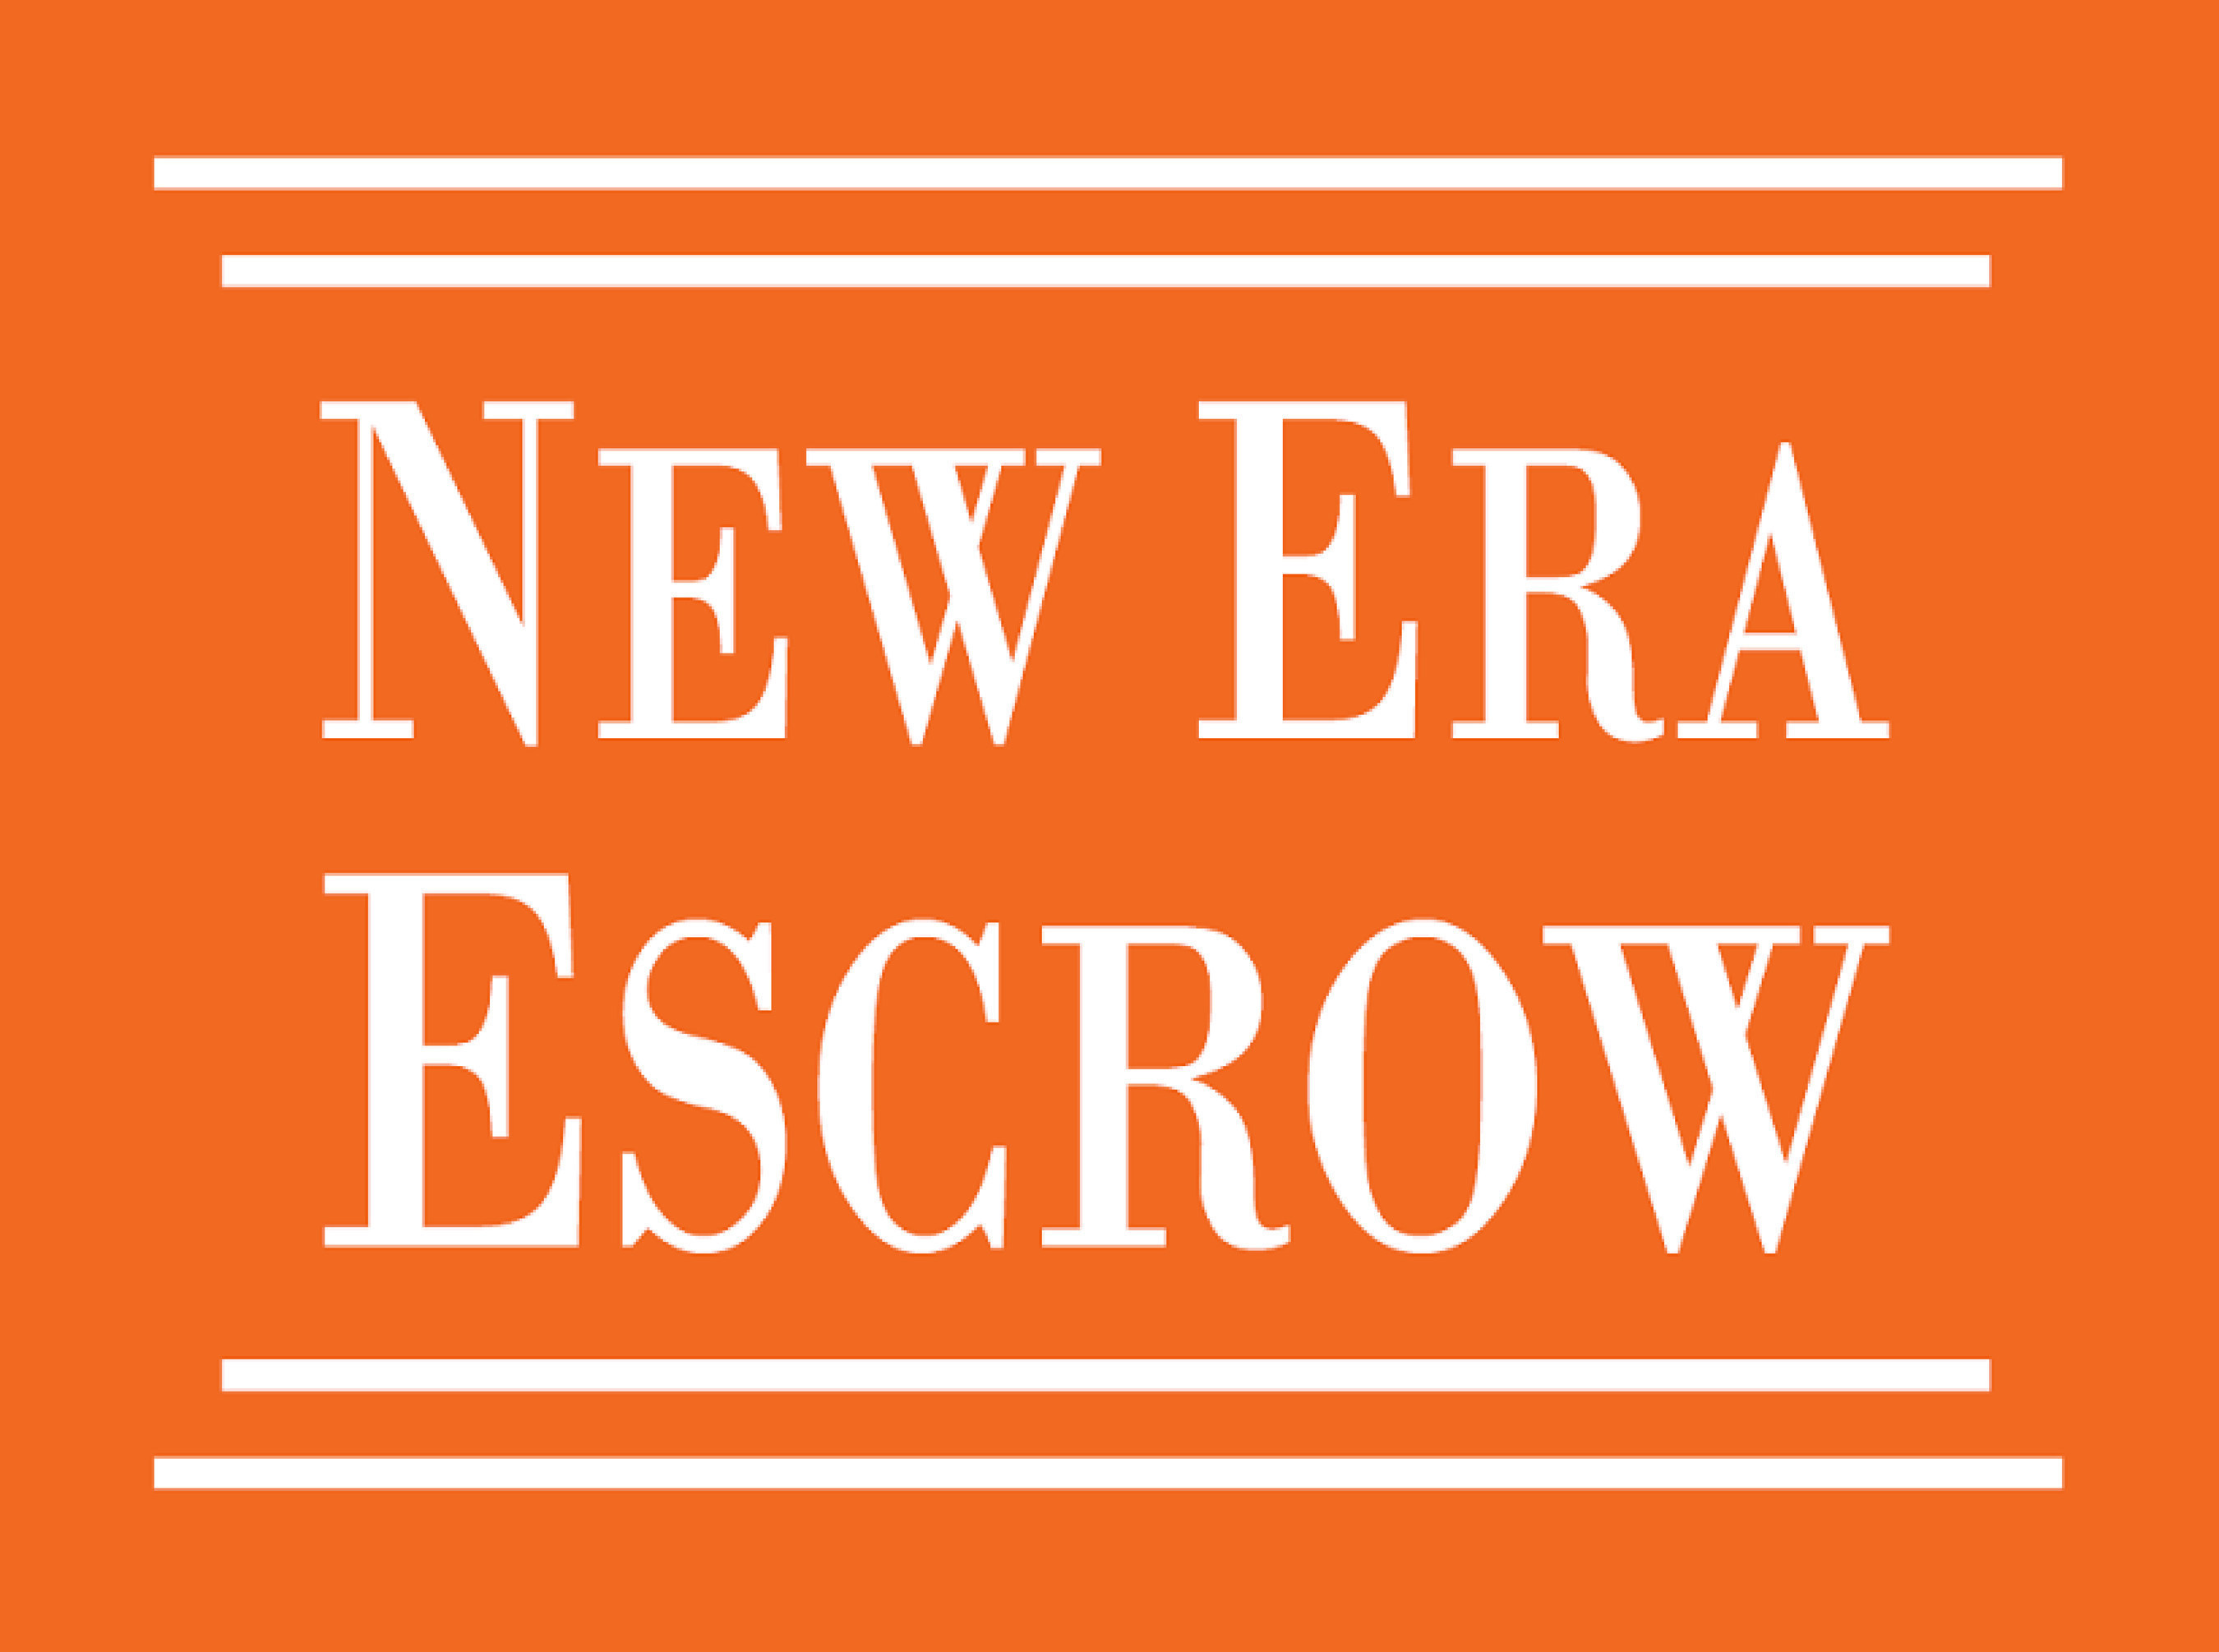 New Era Escrow logo.